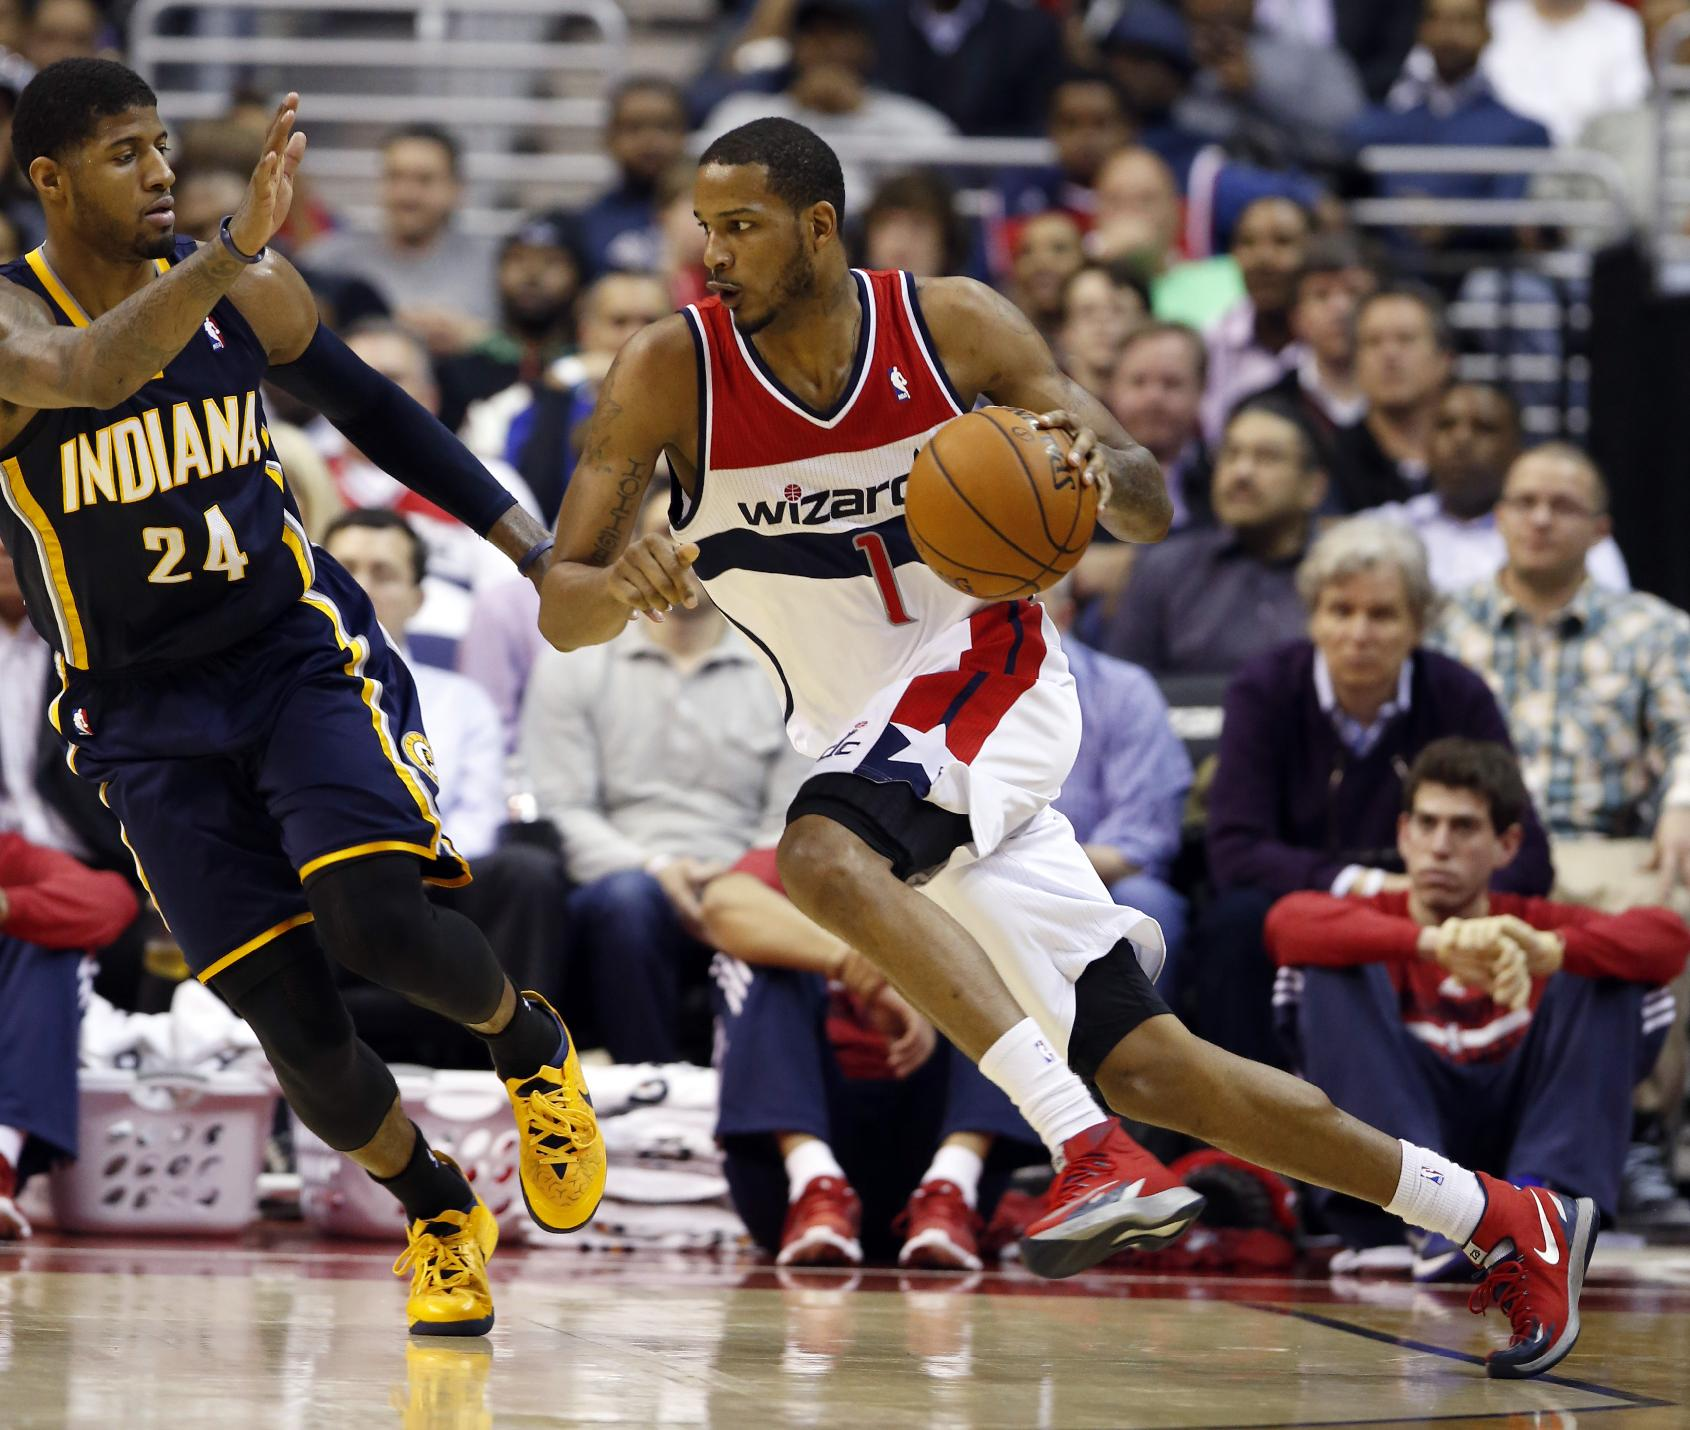 Washington Wizards forward Trevor Ariza (1) drives against Indiana Pacers forward Paul George (24) in the second half of an NBA basketball game on Friday, March 28, 2014, in Washington. The Wizards won 91-78